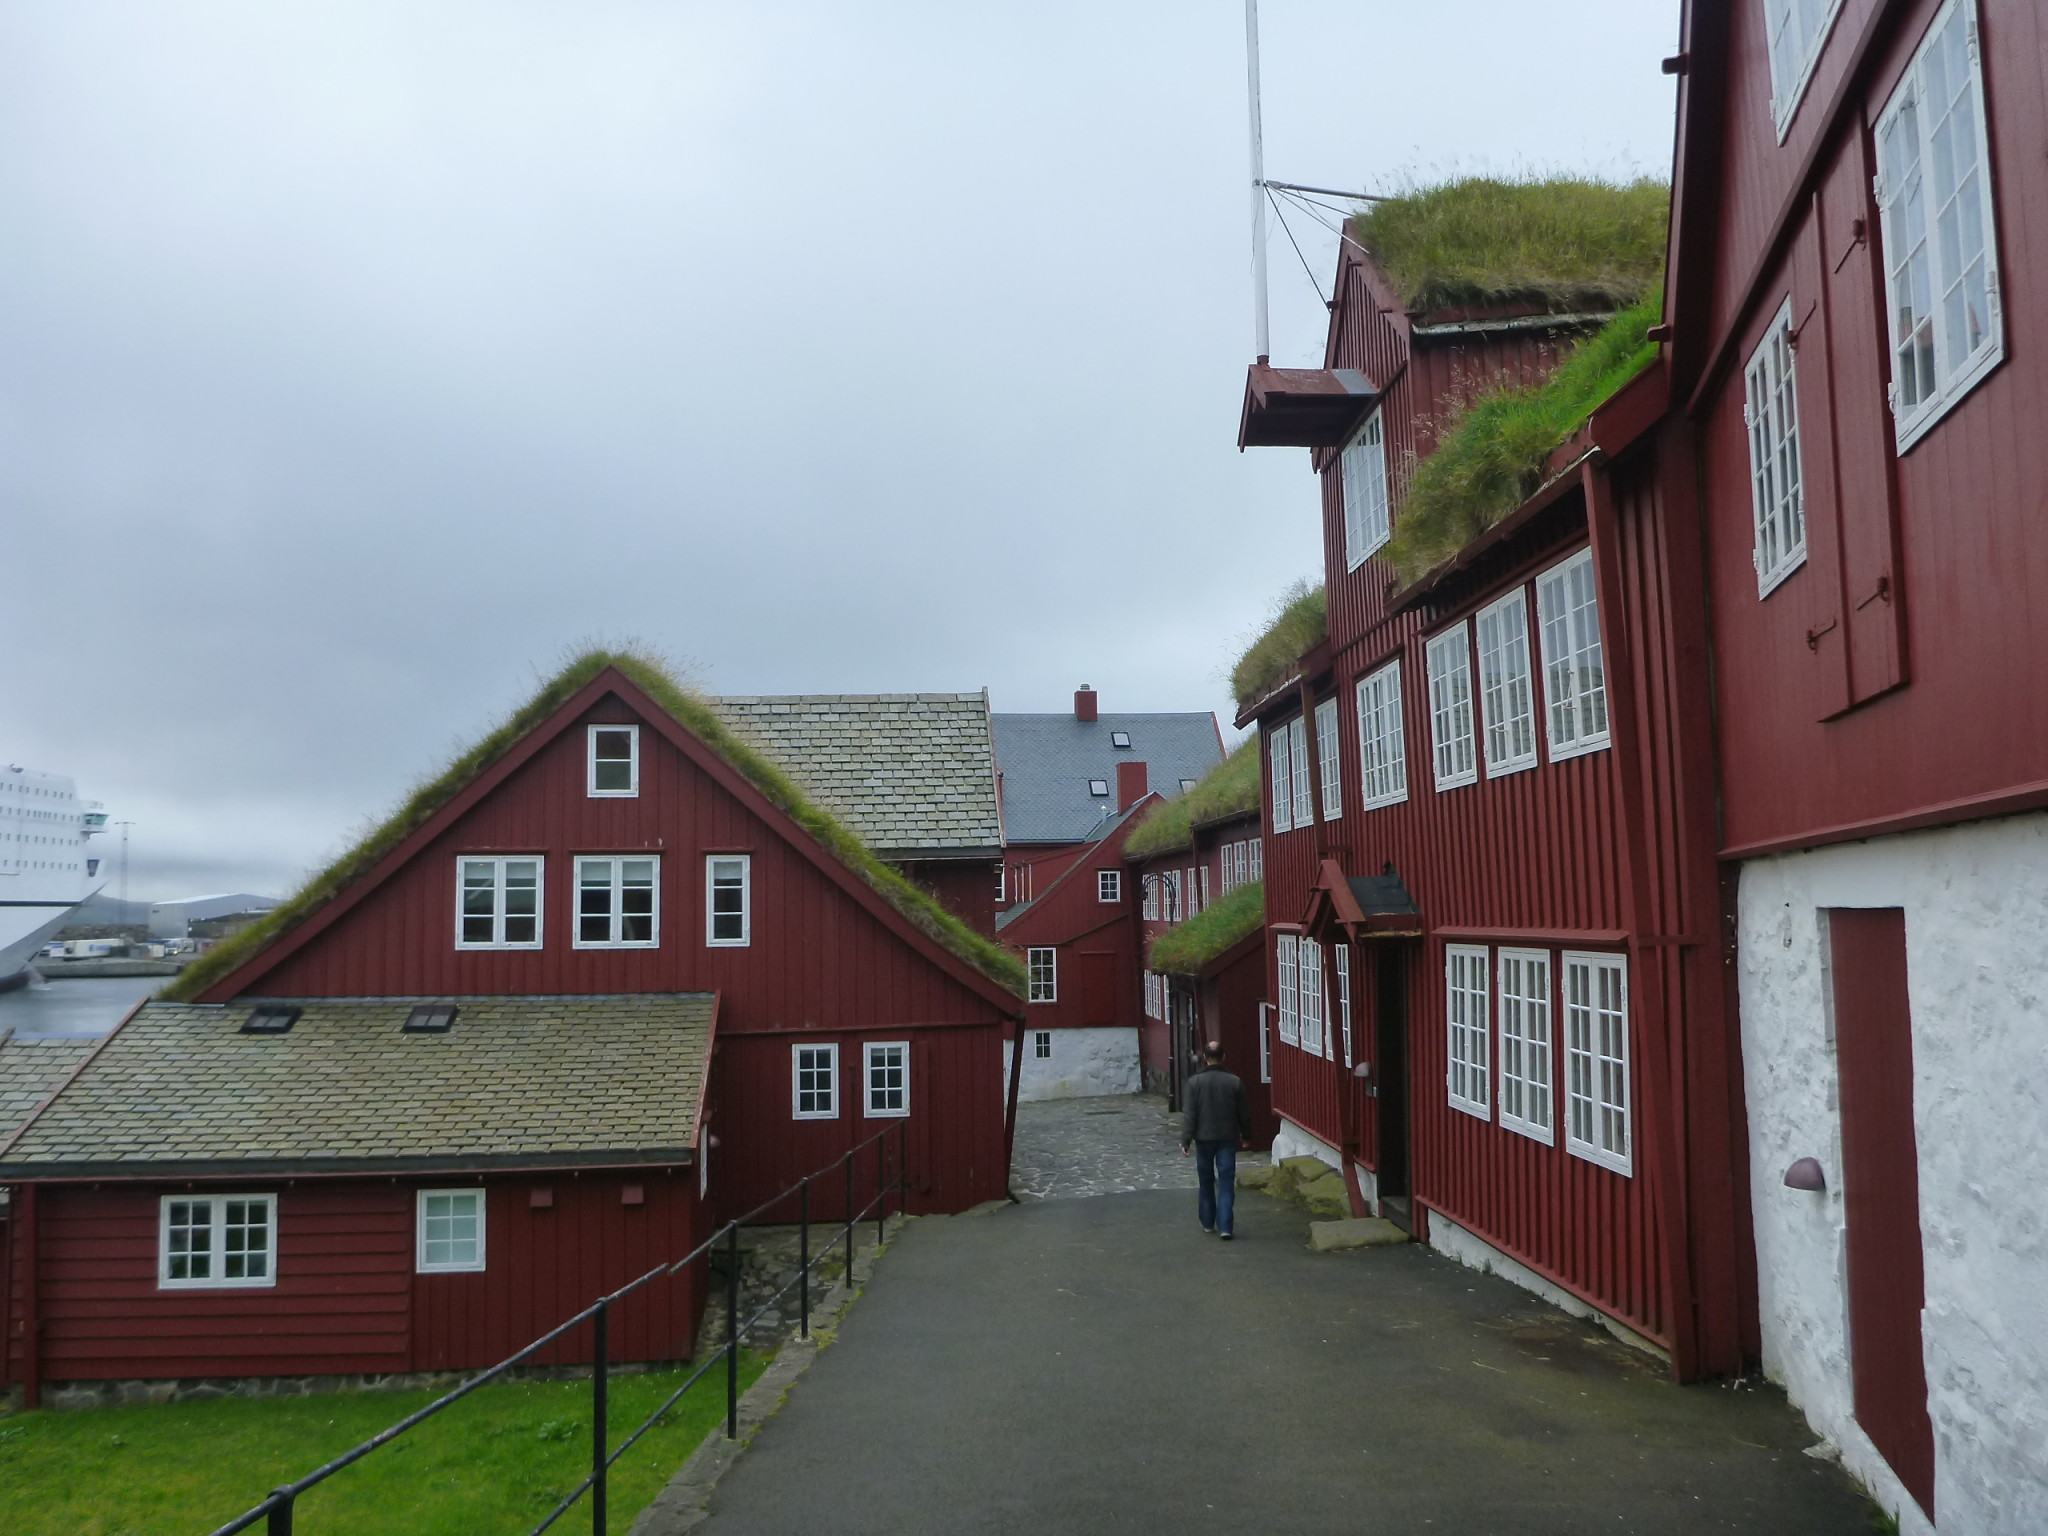 Backpacking in the Faroe Islands: Top 5 Sights in Torshavn